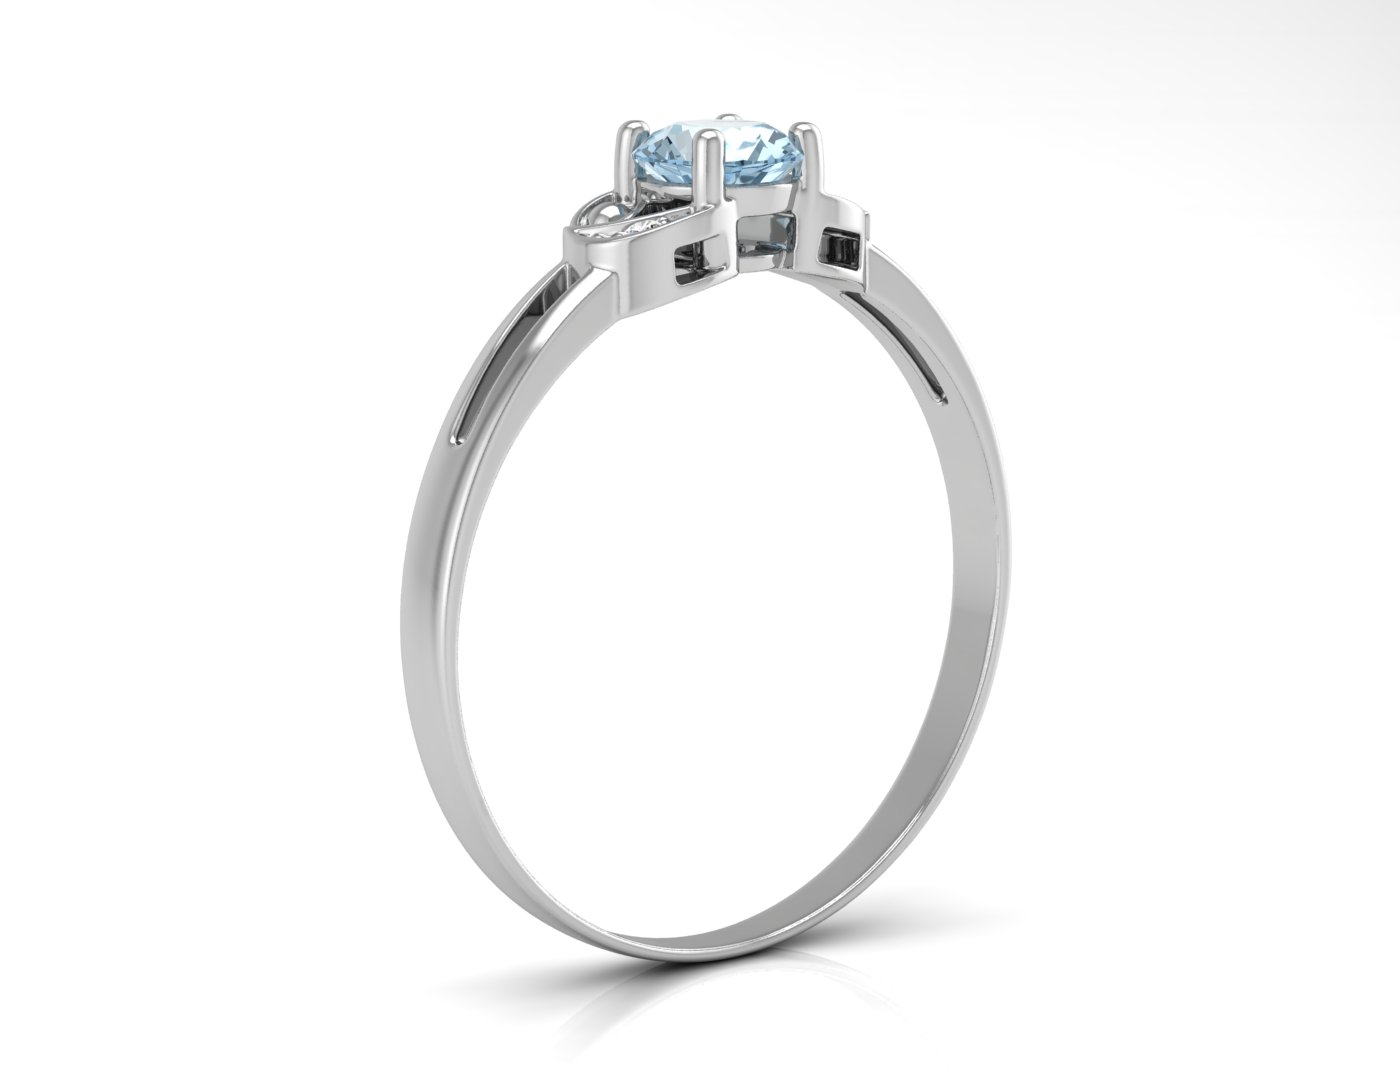 Lot 53 - 9ct White Gold Fancy Cluster Diamond And Blue Topaz Ring 0.01 Carats